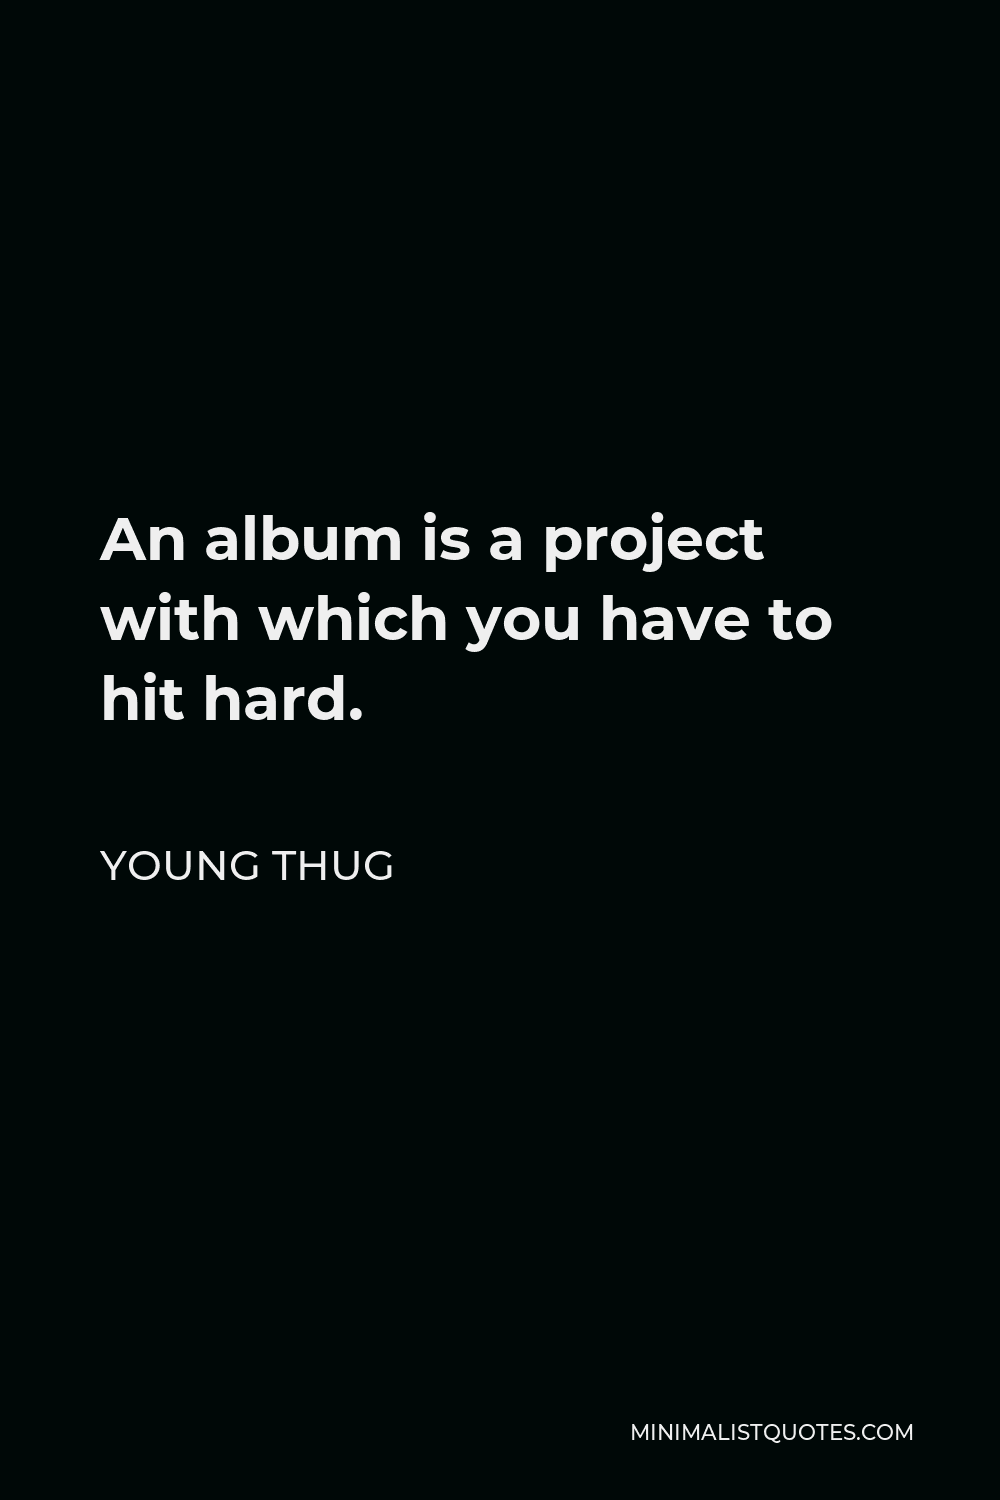 Young Thug Quote - An album is a project with which you have to hit hard.